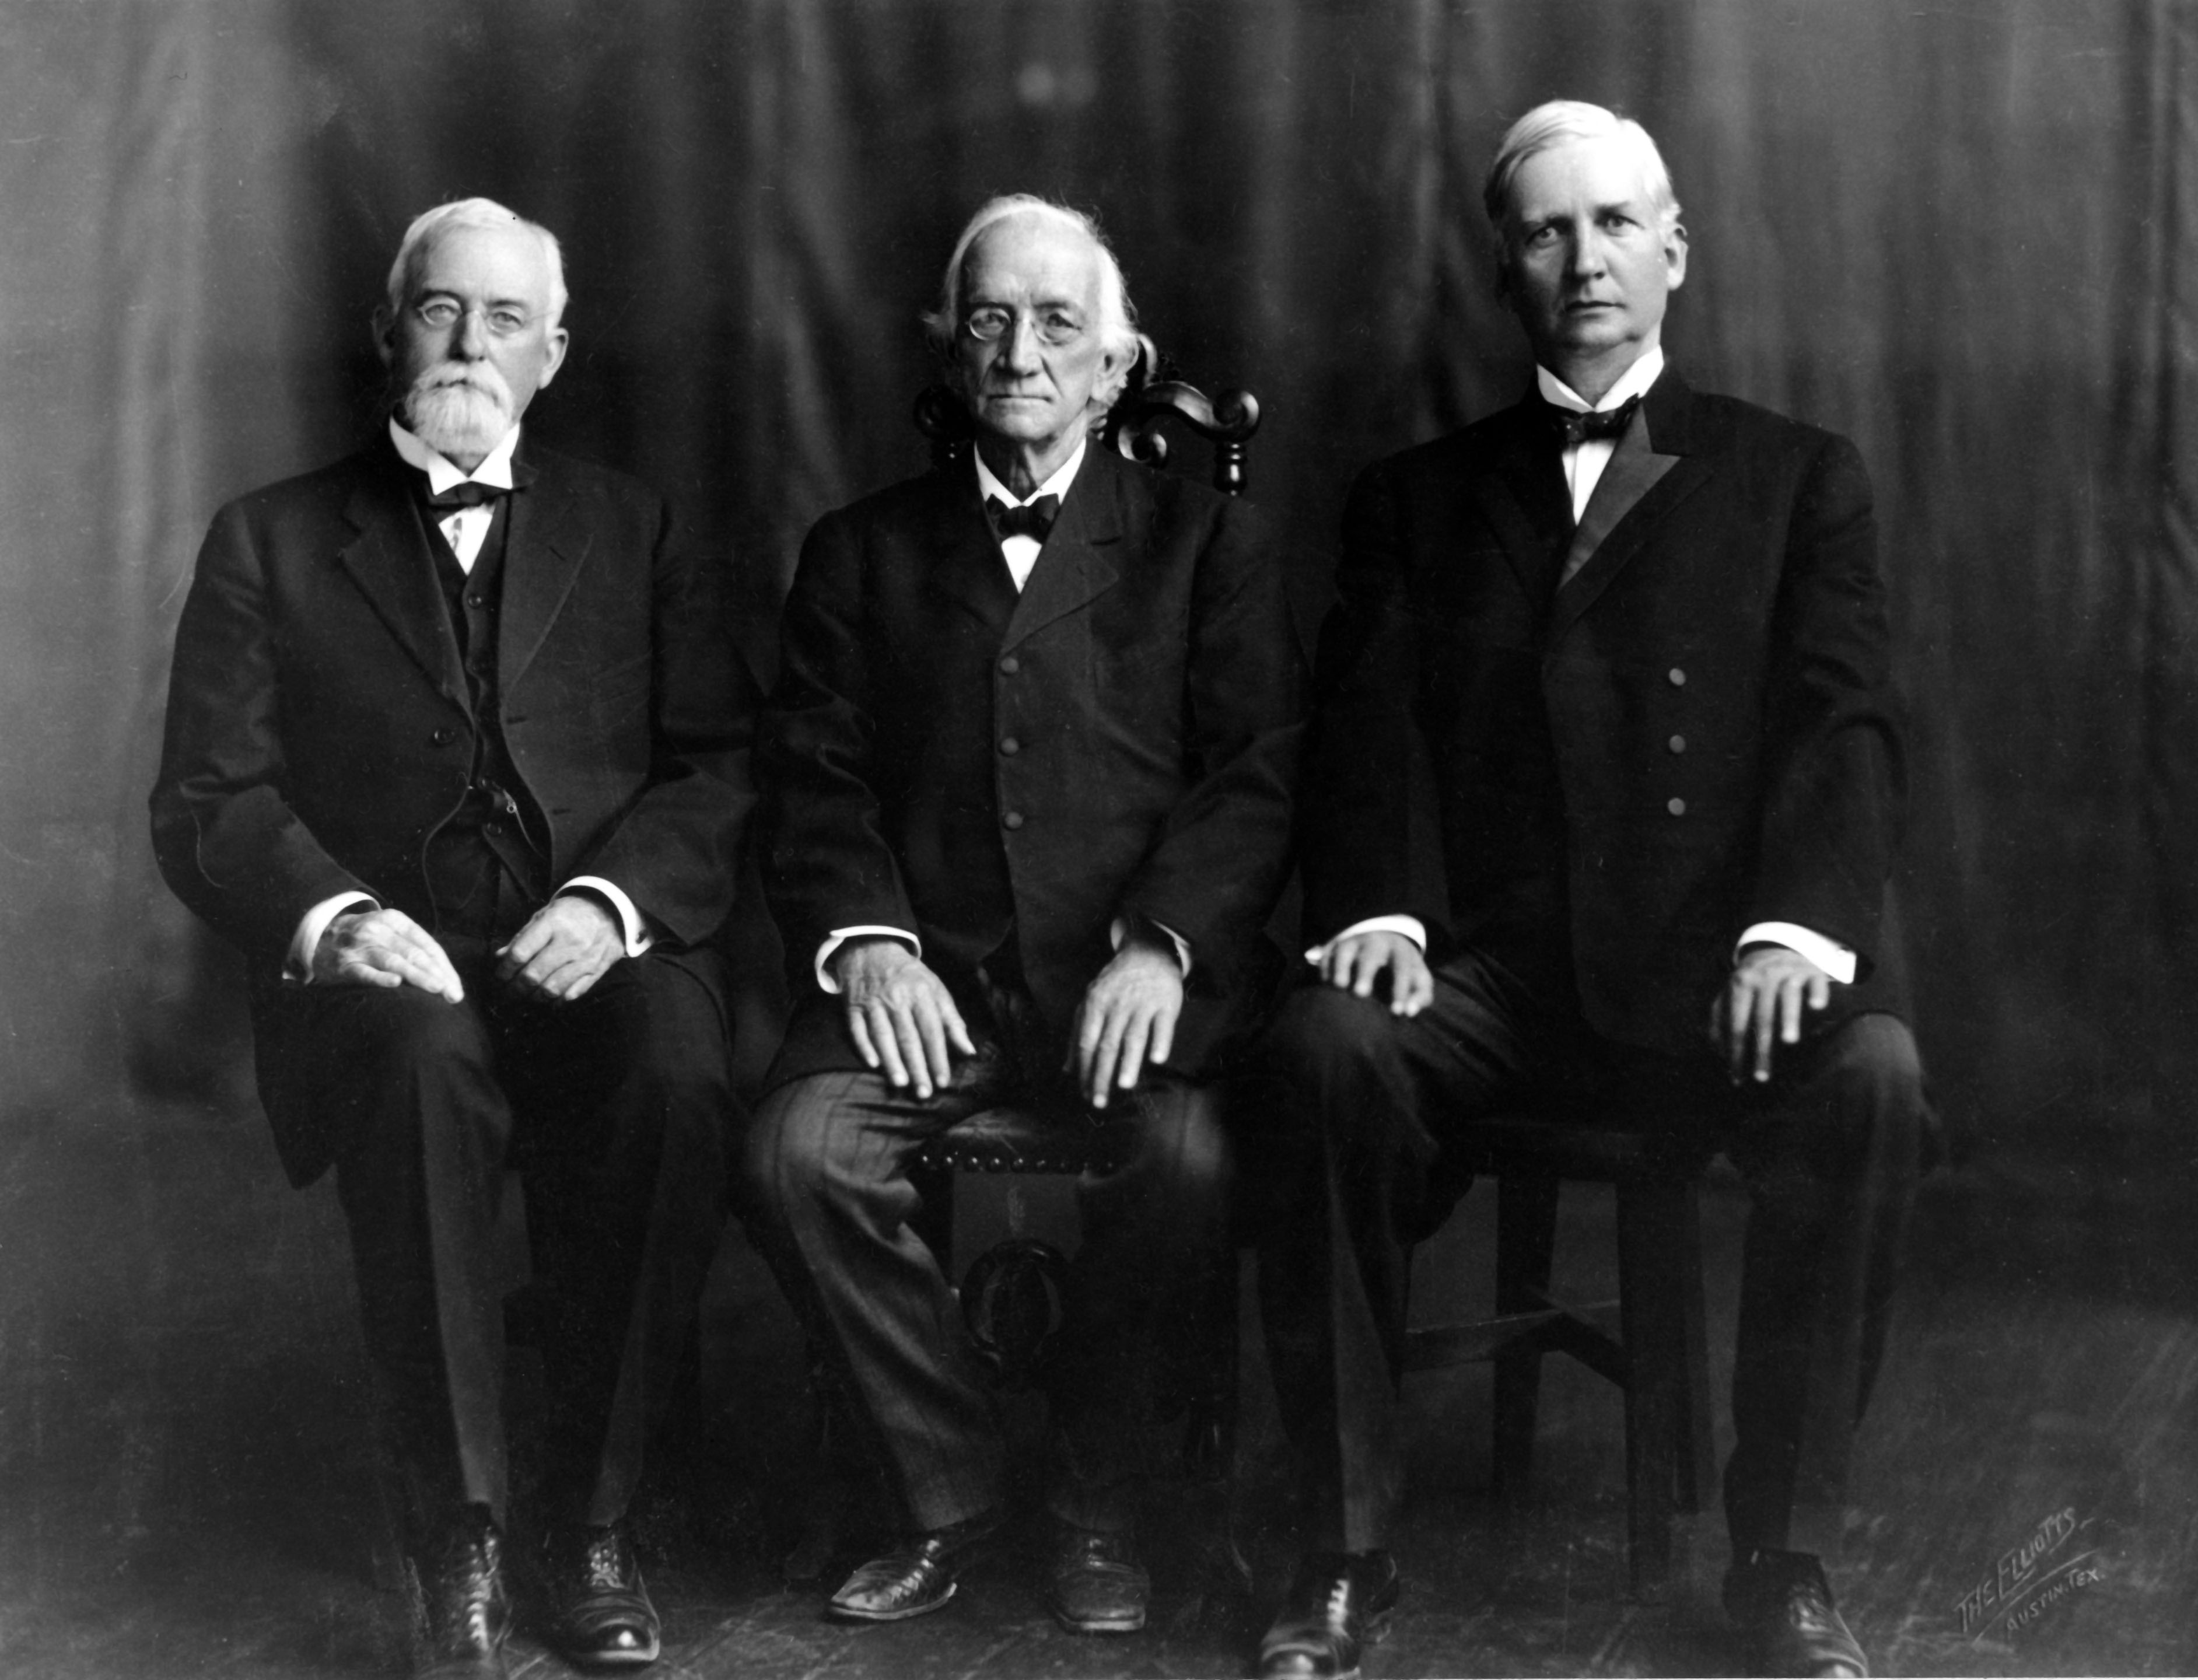 Left to Right: Justice Frank A. Williams, Chief Justice Thomas J. Brown, Justice William F. Ramsey, 1911. Photo: Texas Supreme Court Archives.